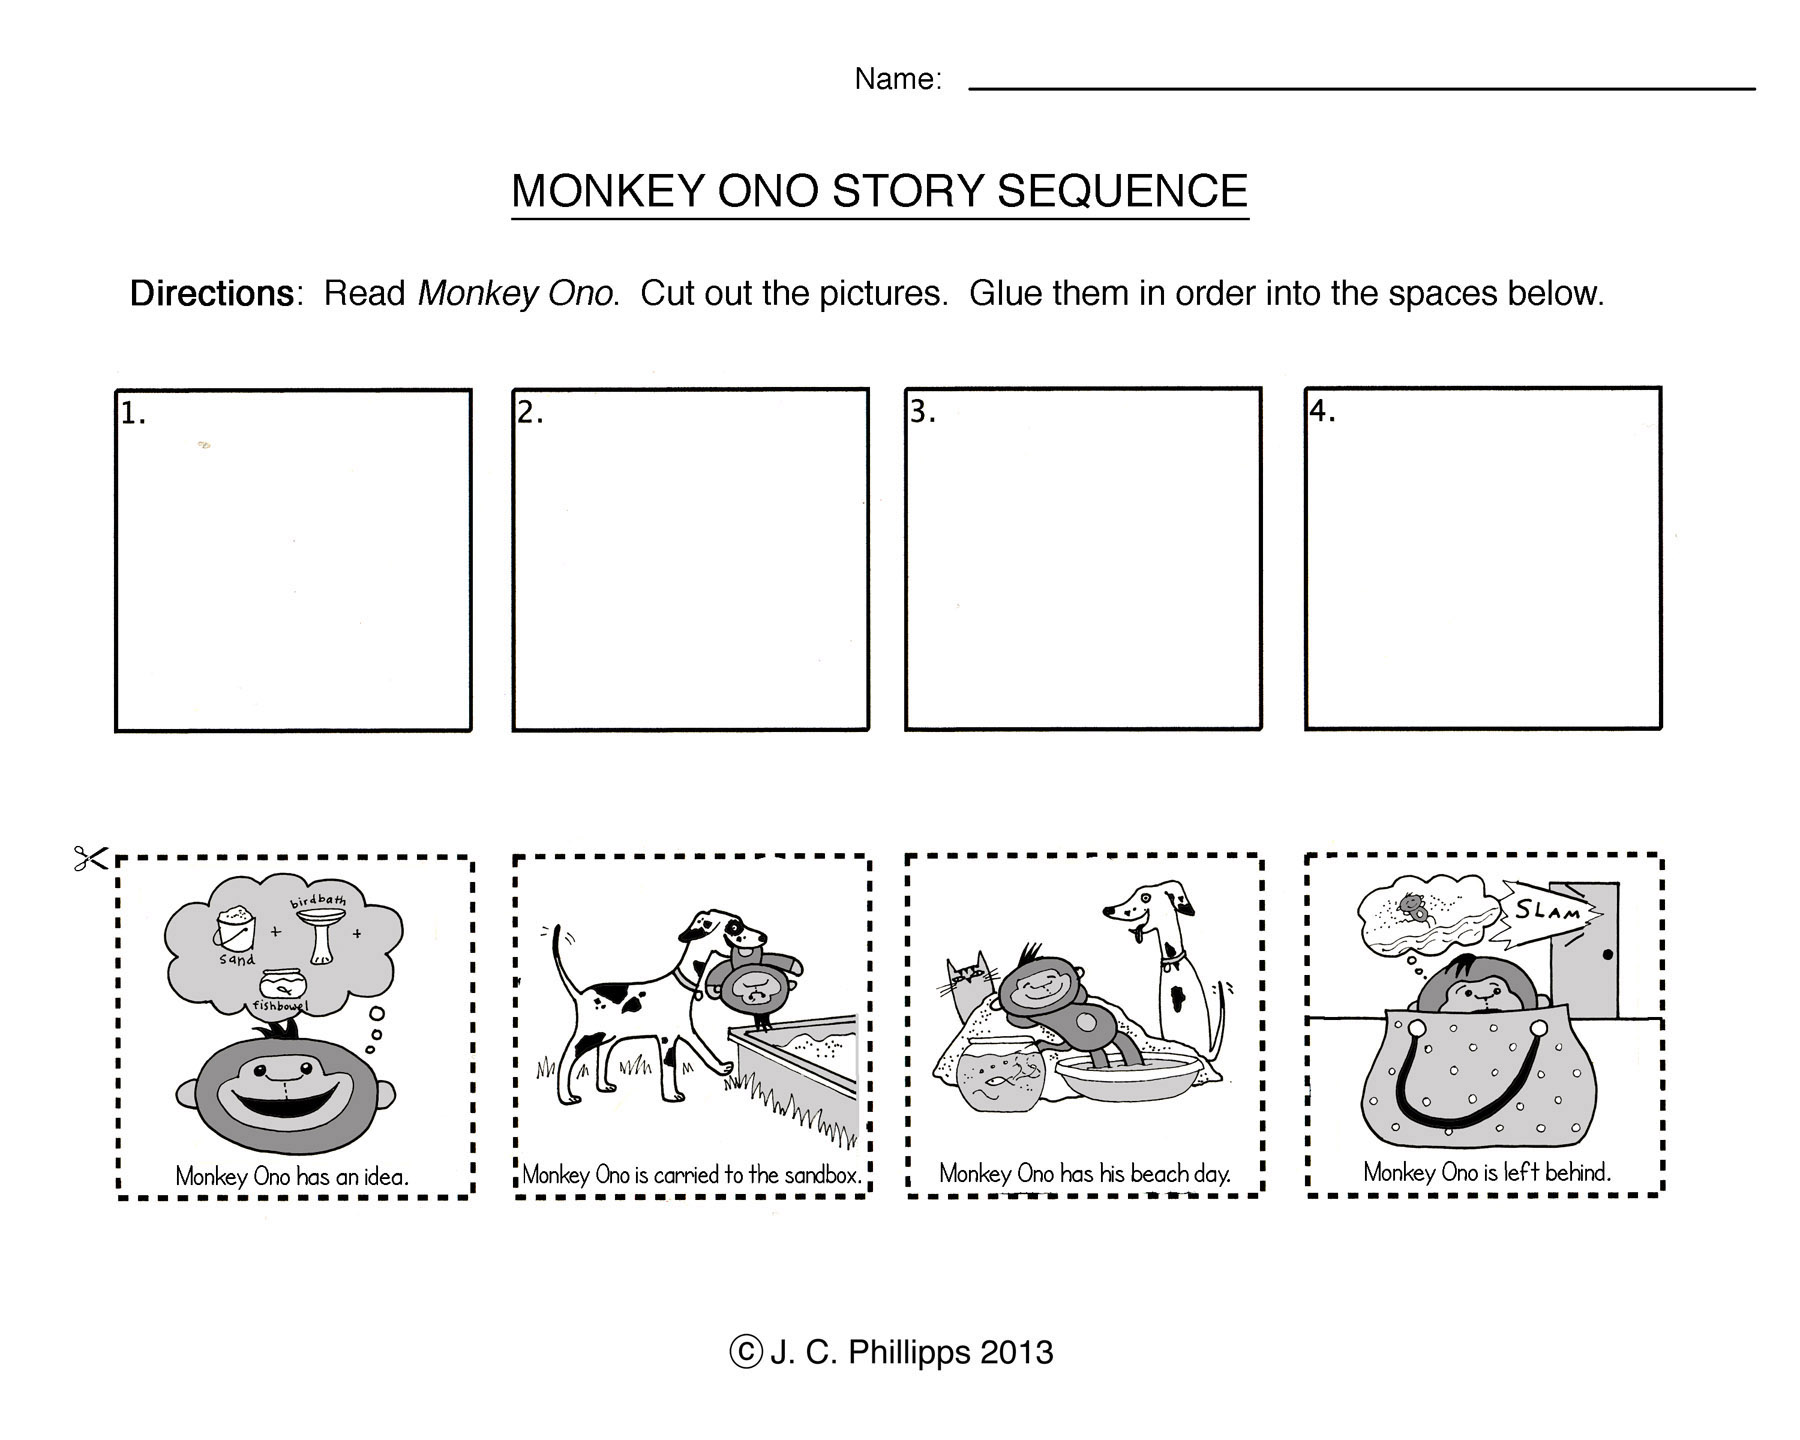 17 Best ideas about Sequencing Worksheets on Pinterest ...